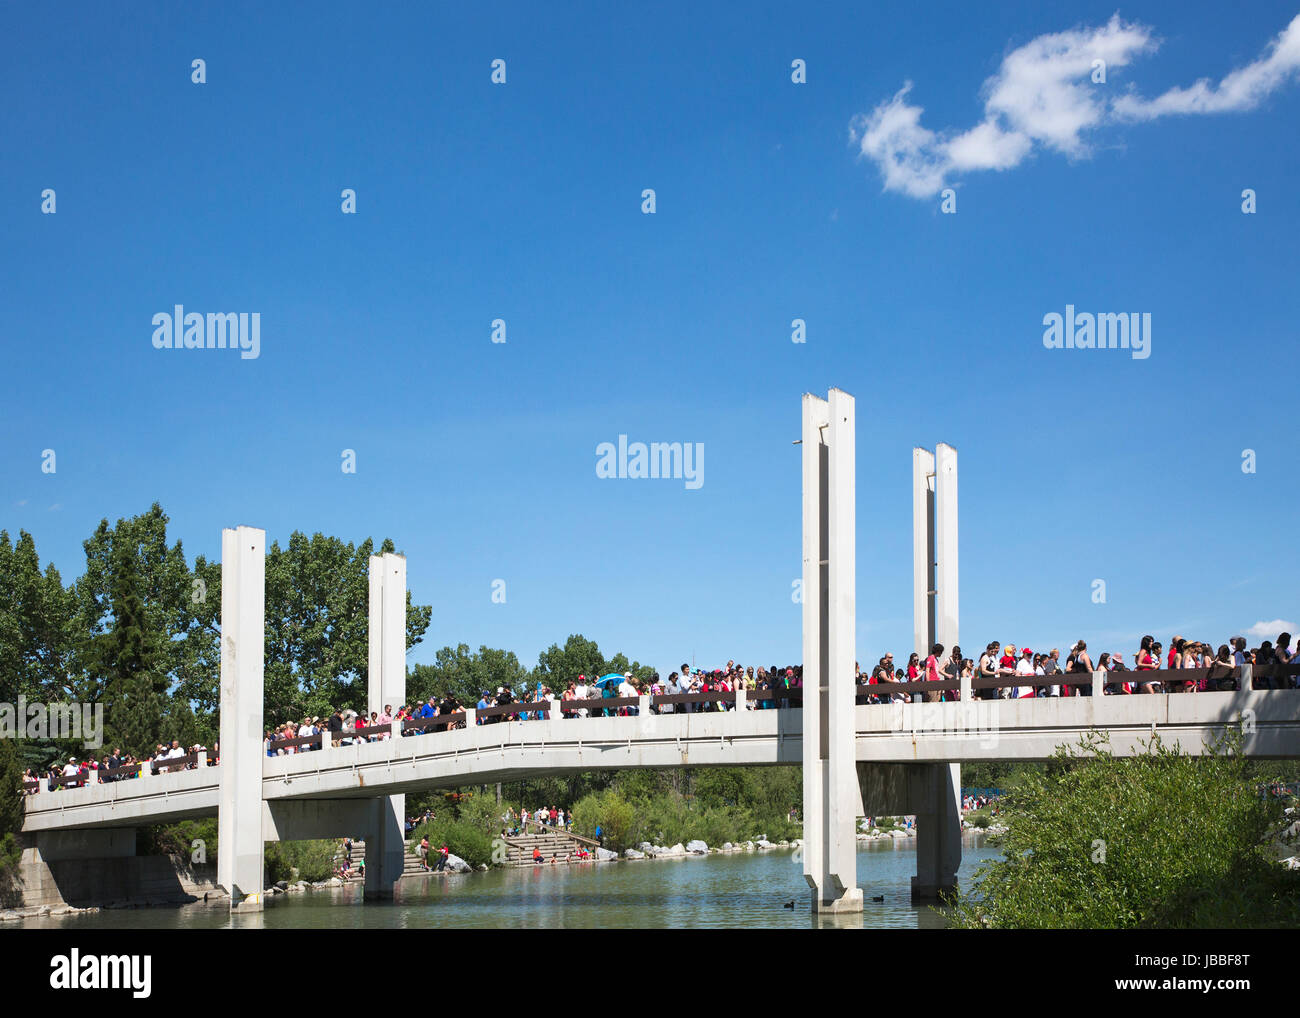 Canada Day crowds on bridge over lagoon between Prince's Island and Eau Claire in downtown Calgary - Stock Image